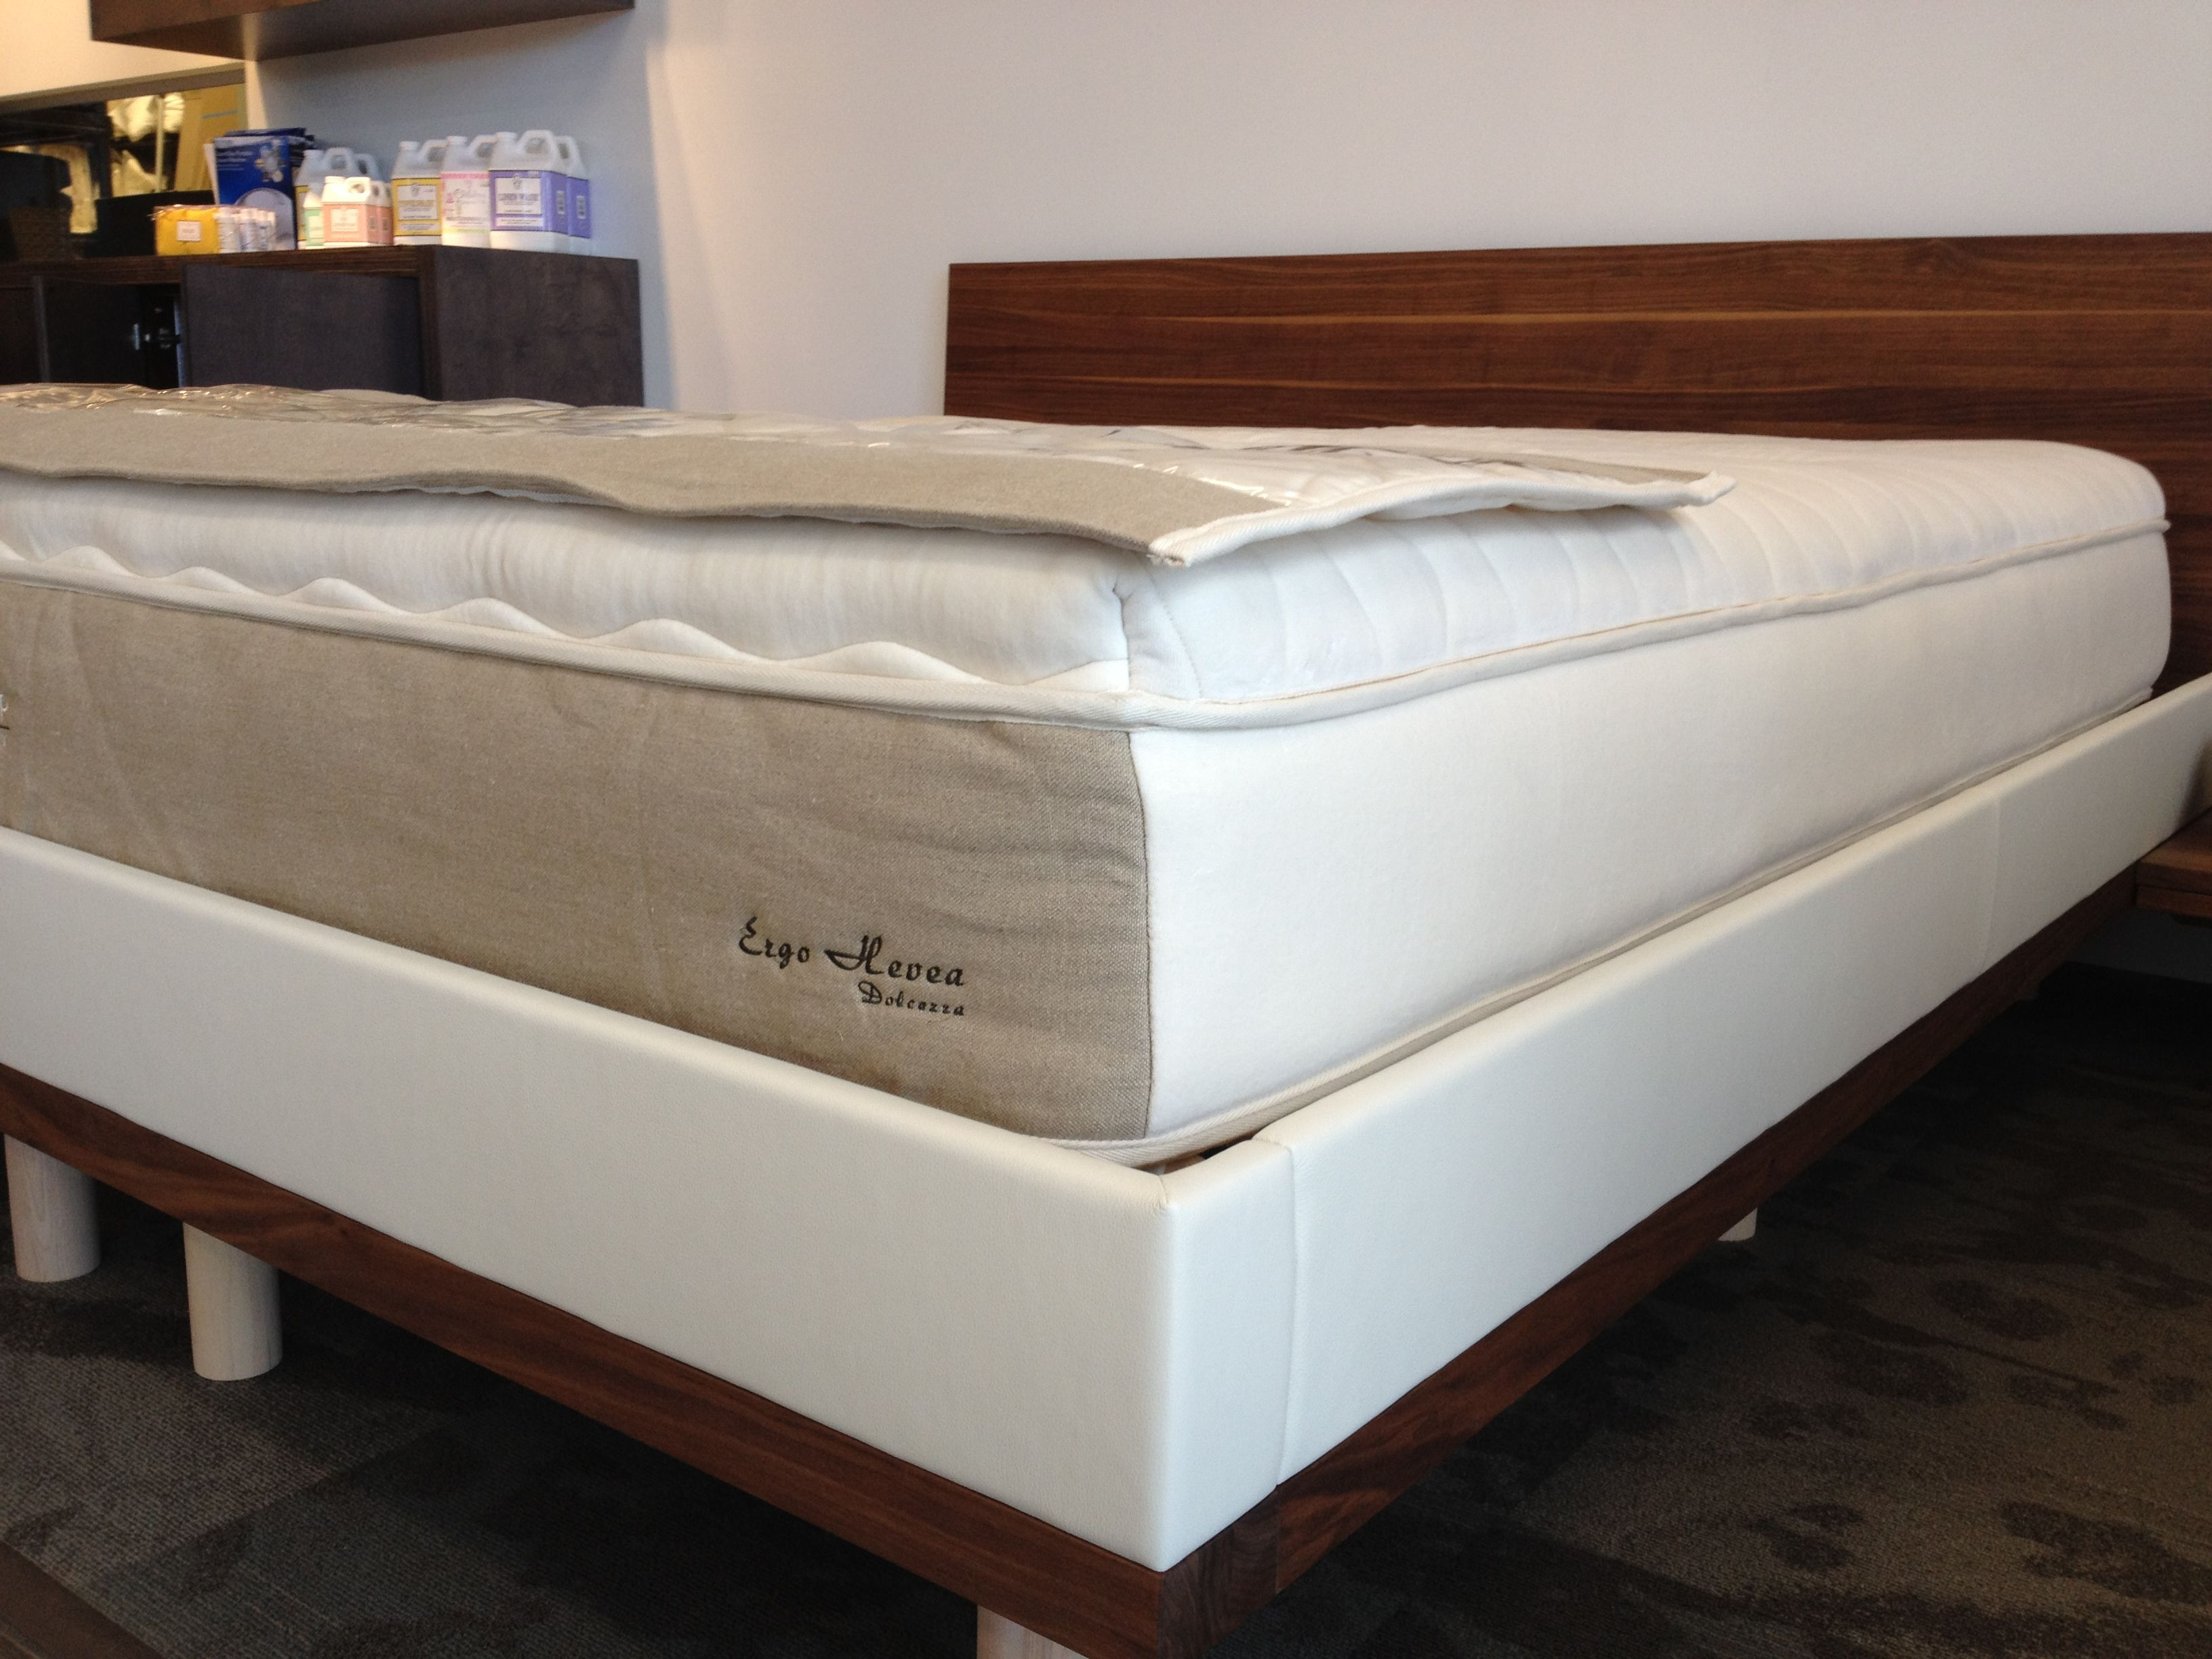 the riletto platform bed wnight stands by team 7 on display at the mattress